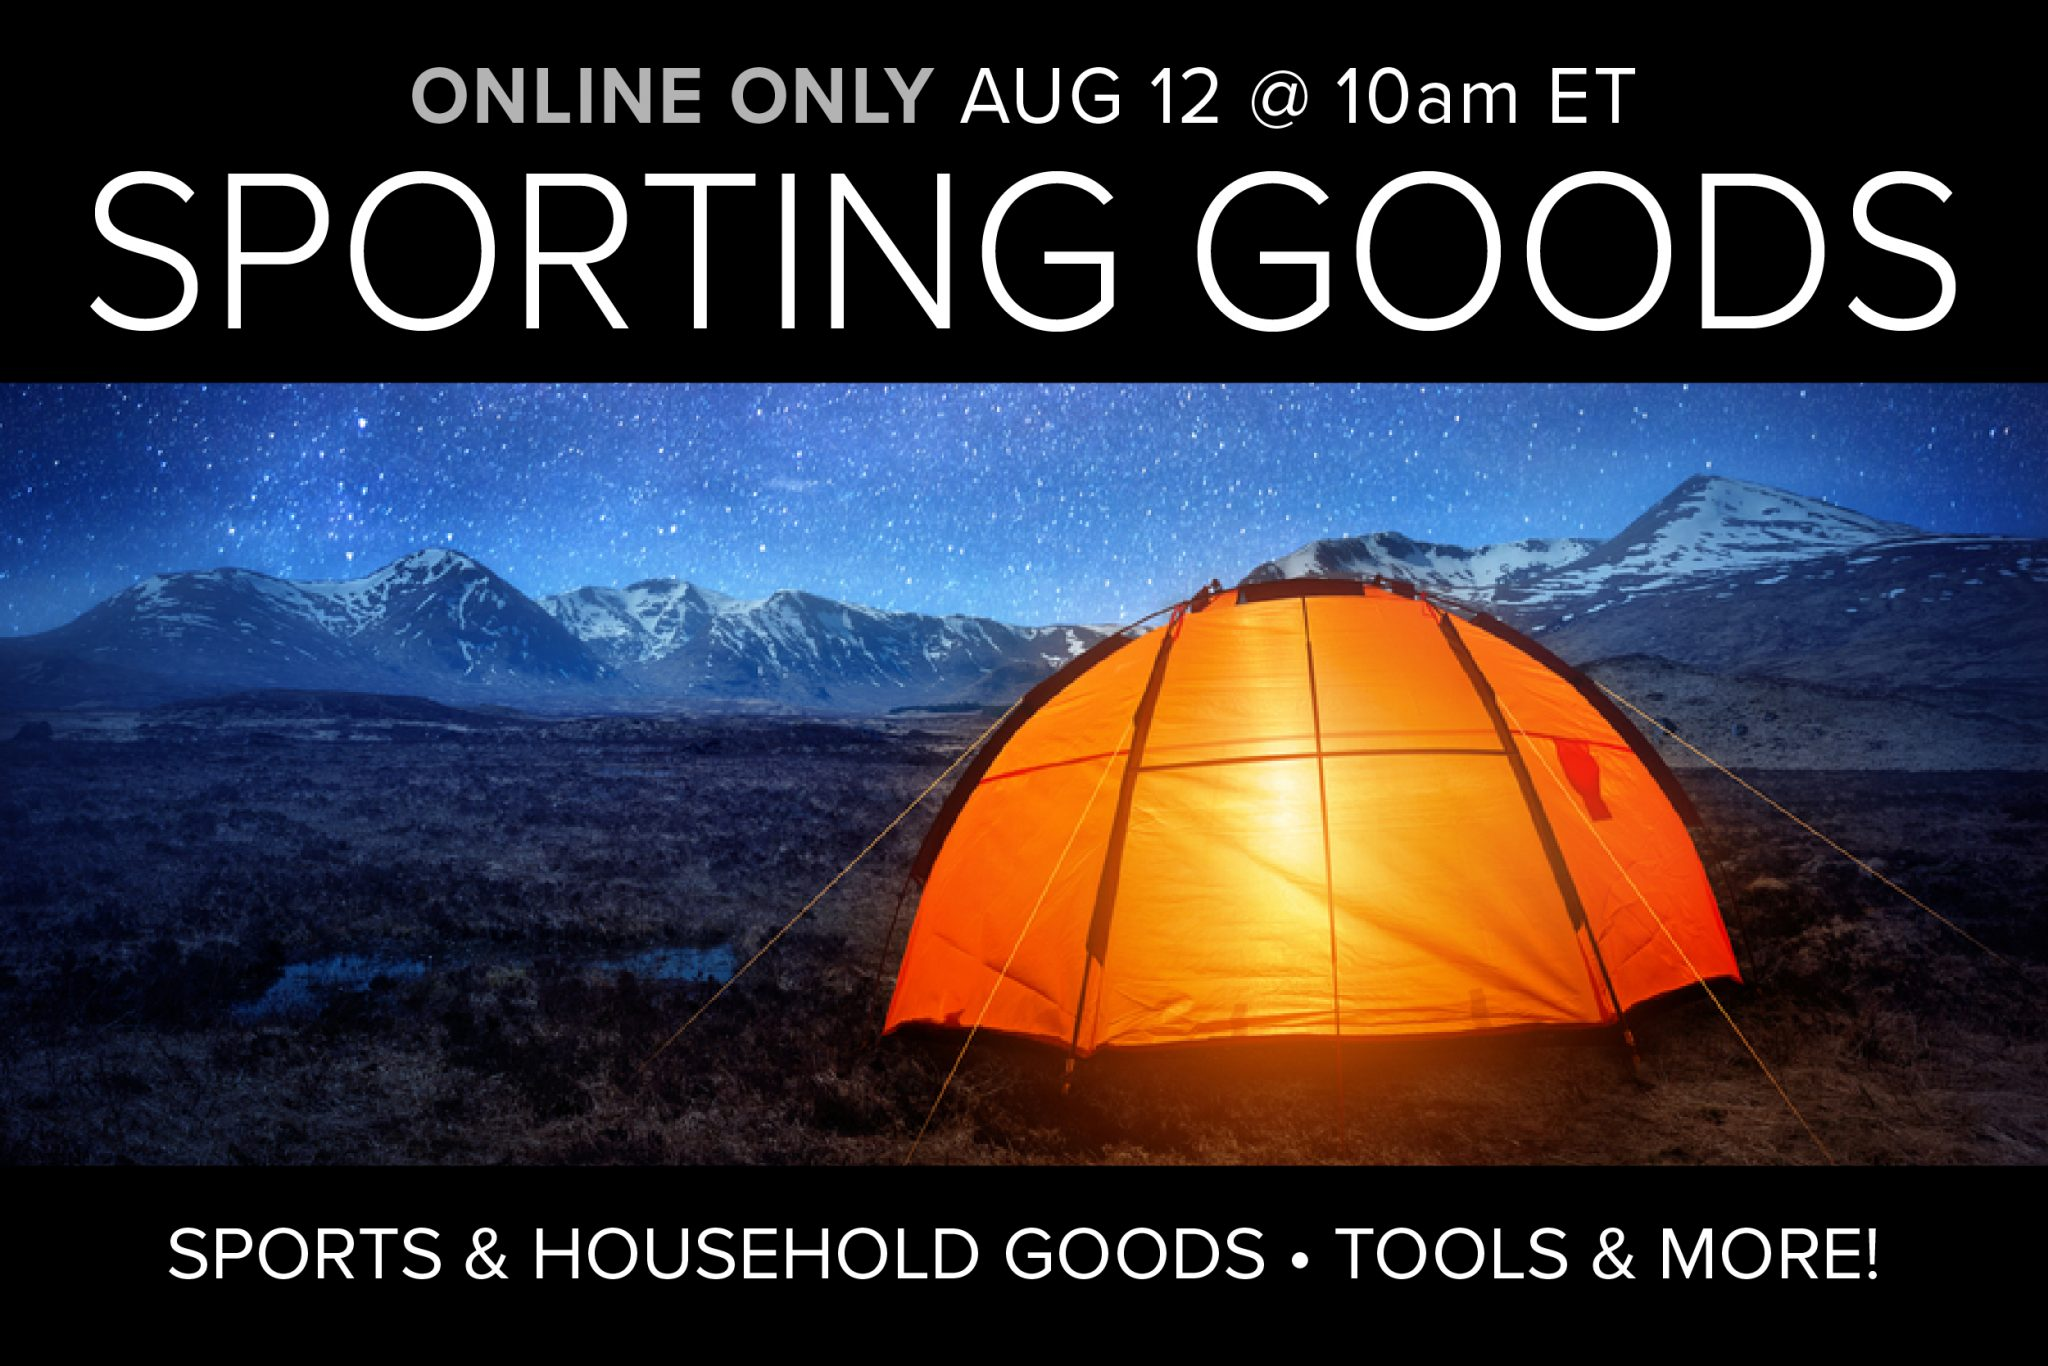 August 2020 Sporting Goods Household Good Tools Auction